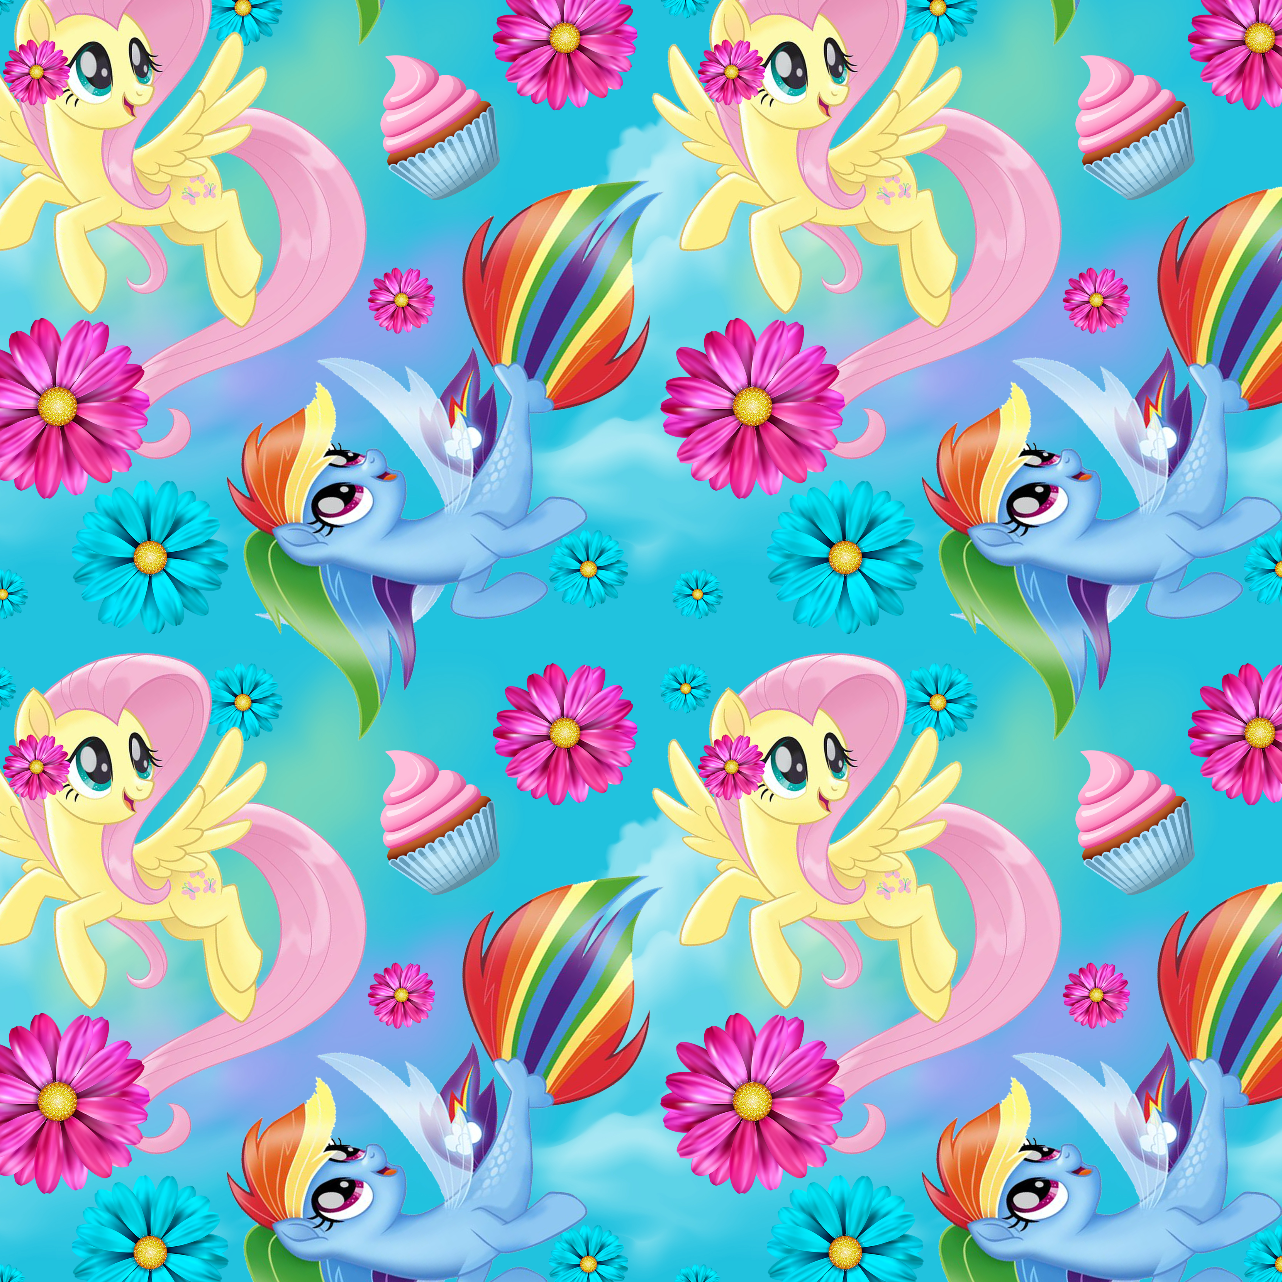 PRE ORDER - My Little Pony Aqua - Digital Fabric Print